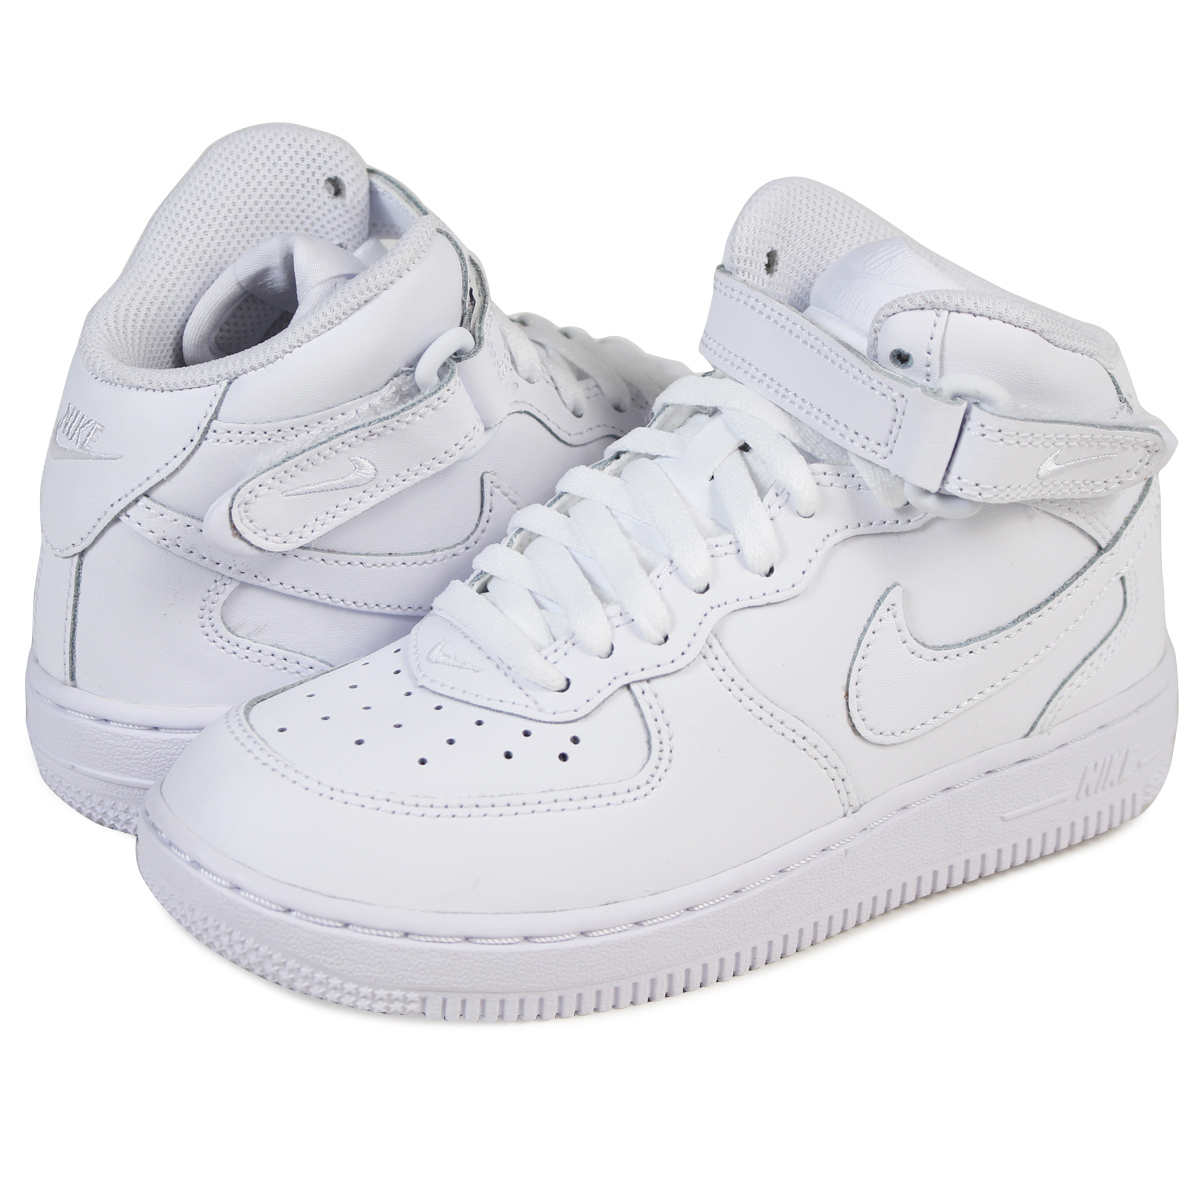 7b51b813 Nike NIKE kids ' AIR FORCE 1 MID PS sneakers air force 1 mid preschool  leather junior kids PRESCHOOL 314196-113 white [12 / 26 new stock]  [regular] ★ ...